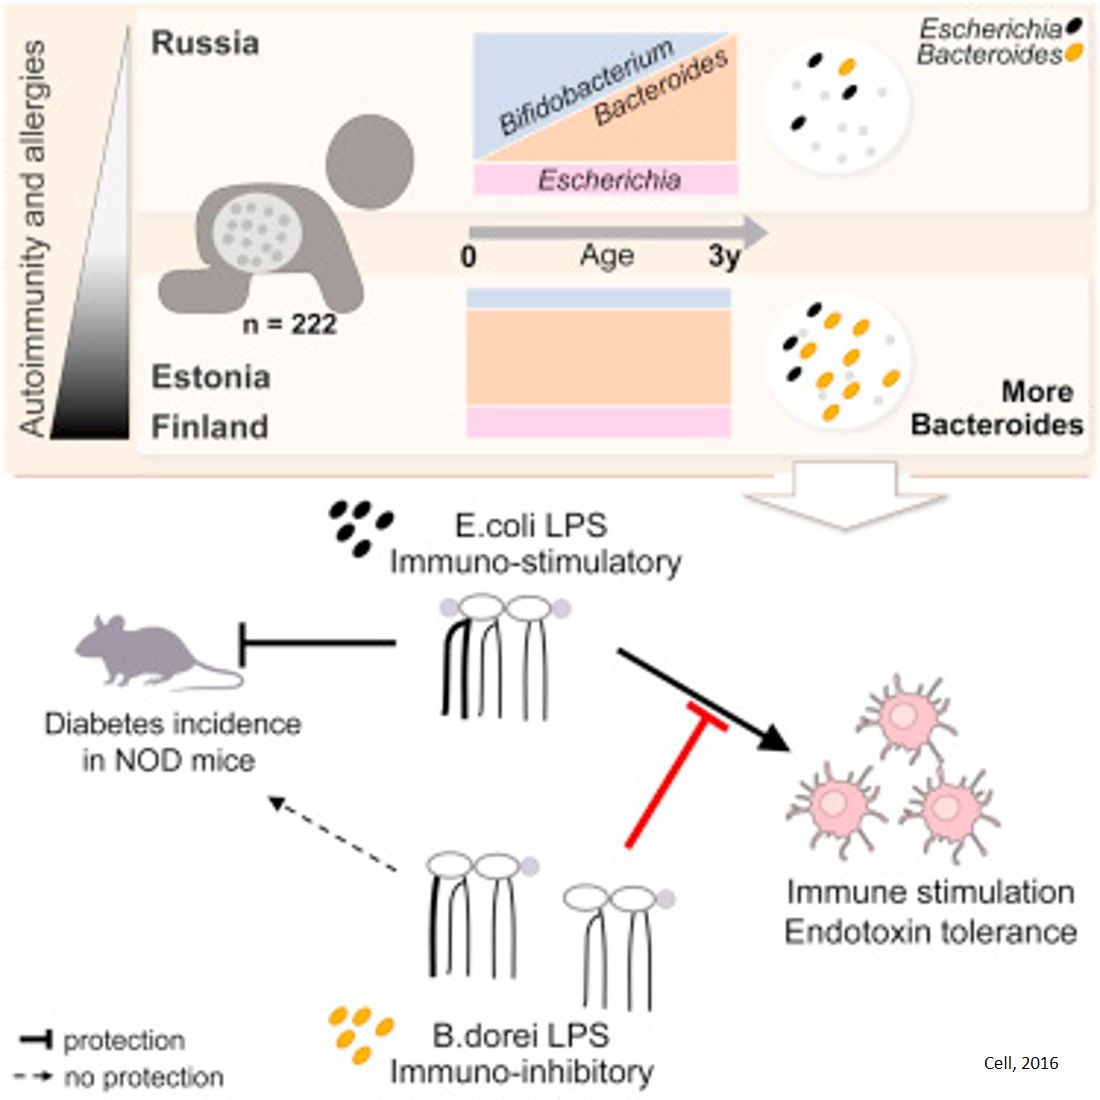 The gut microbiomes of infants have an impact on autoimmunity